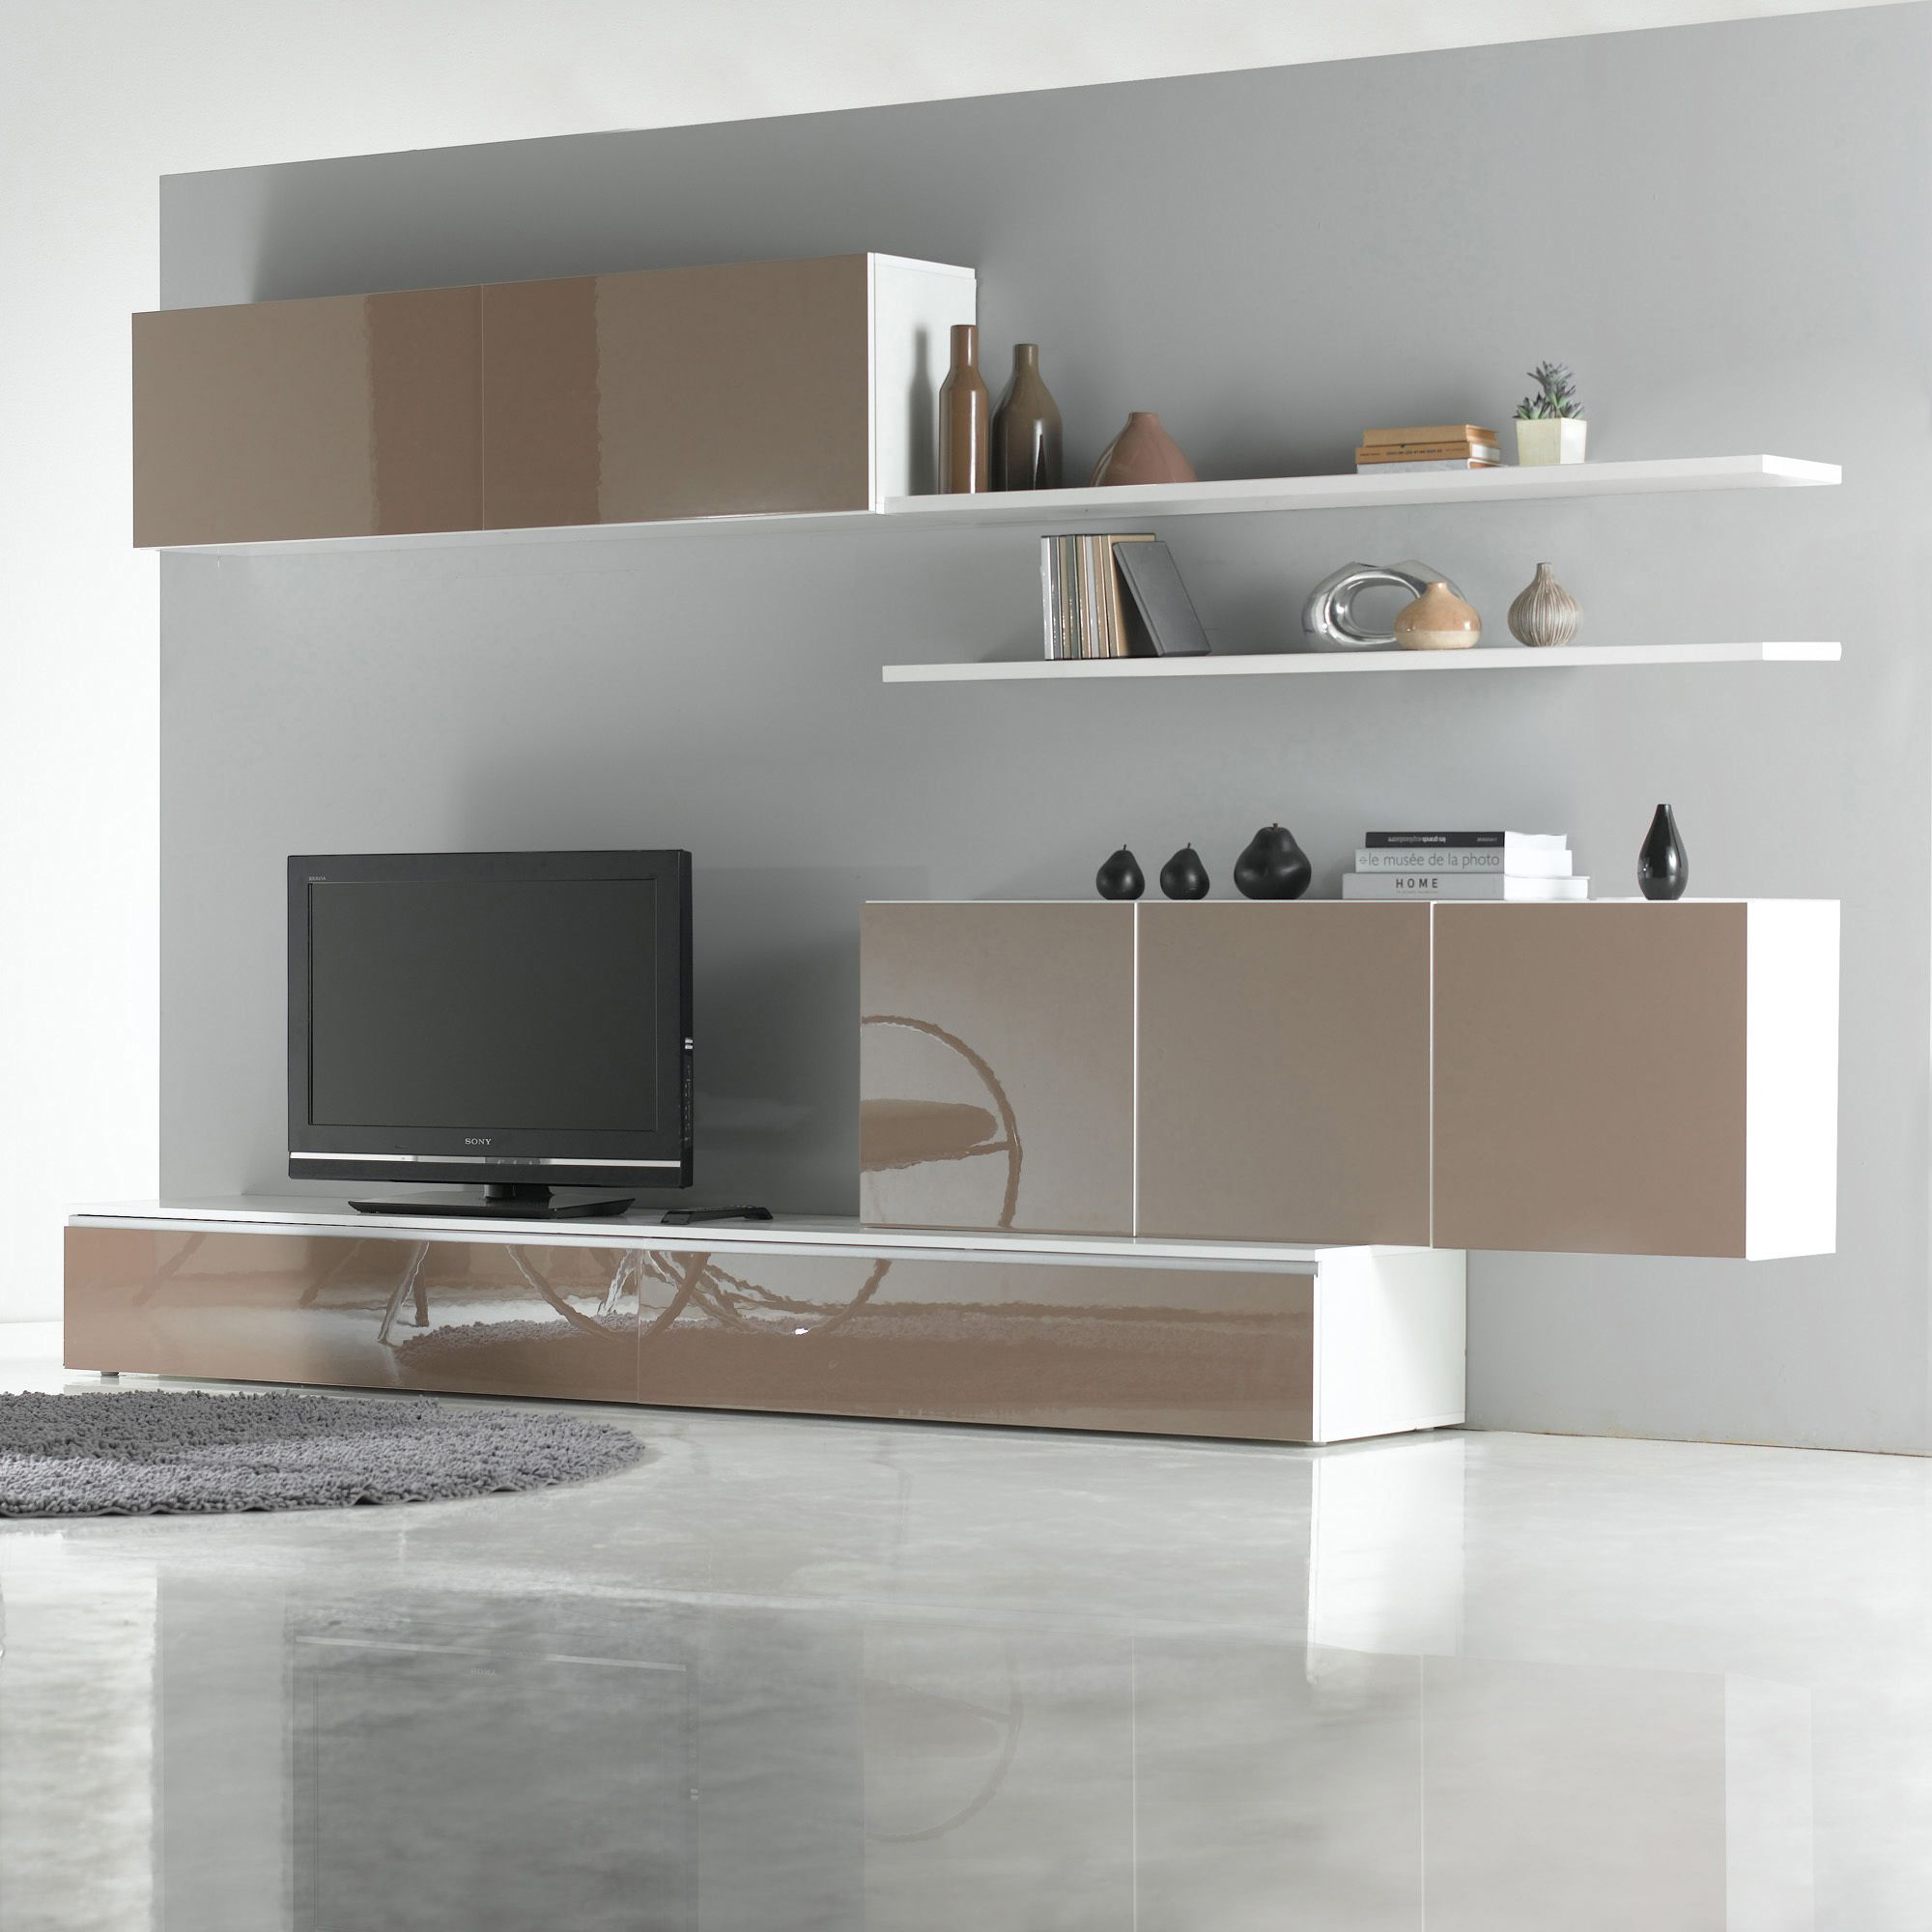 ensemble mural tv glosse blanc taupe brillant 4 l ments prix promo 3 suisses 699 00 ttc. Black Bedroom Furniture Sets. Home Design Ideas